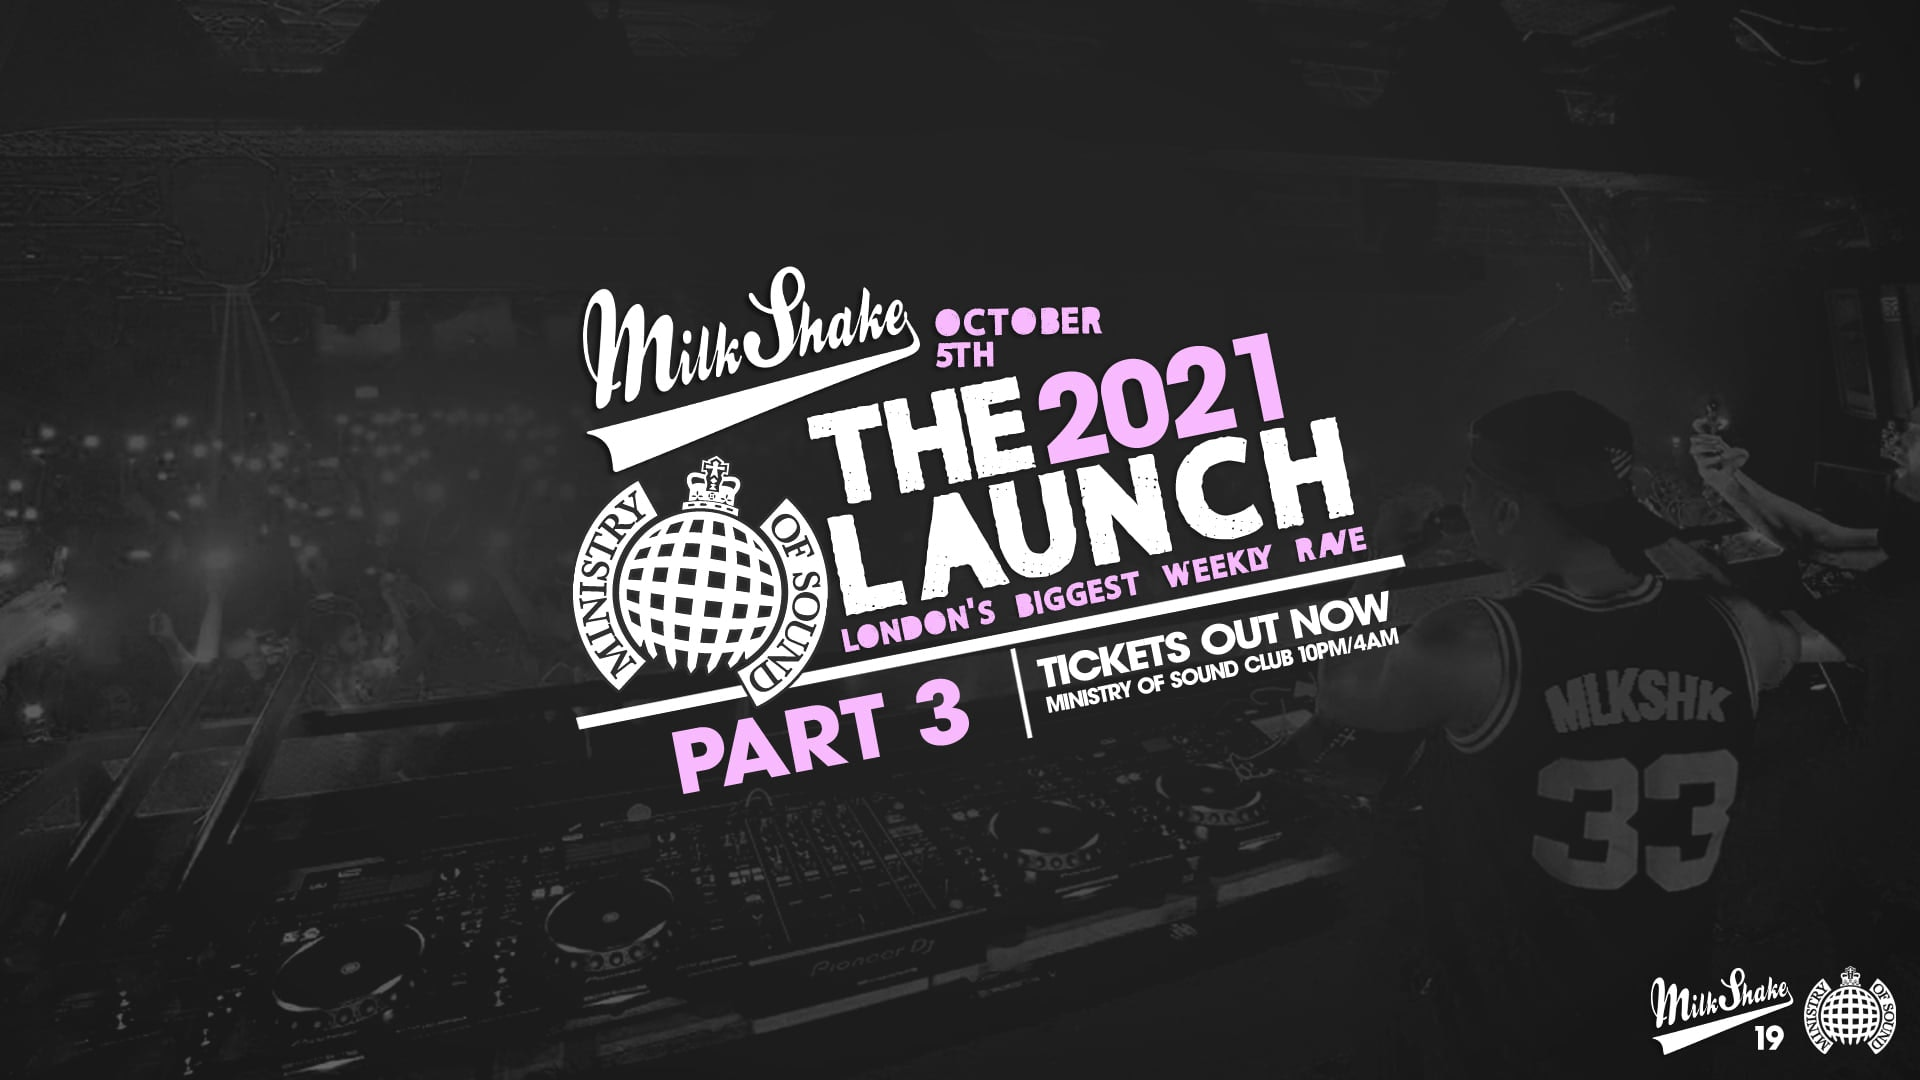 Ministry of Sound, Milkshake – The Official Freshers Launch PART 3 🔥 Ft SPECIAL DJ GUEST 👀